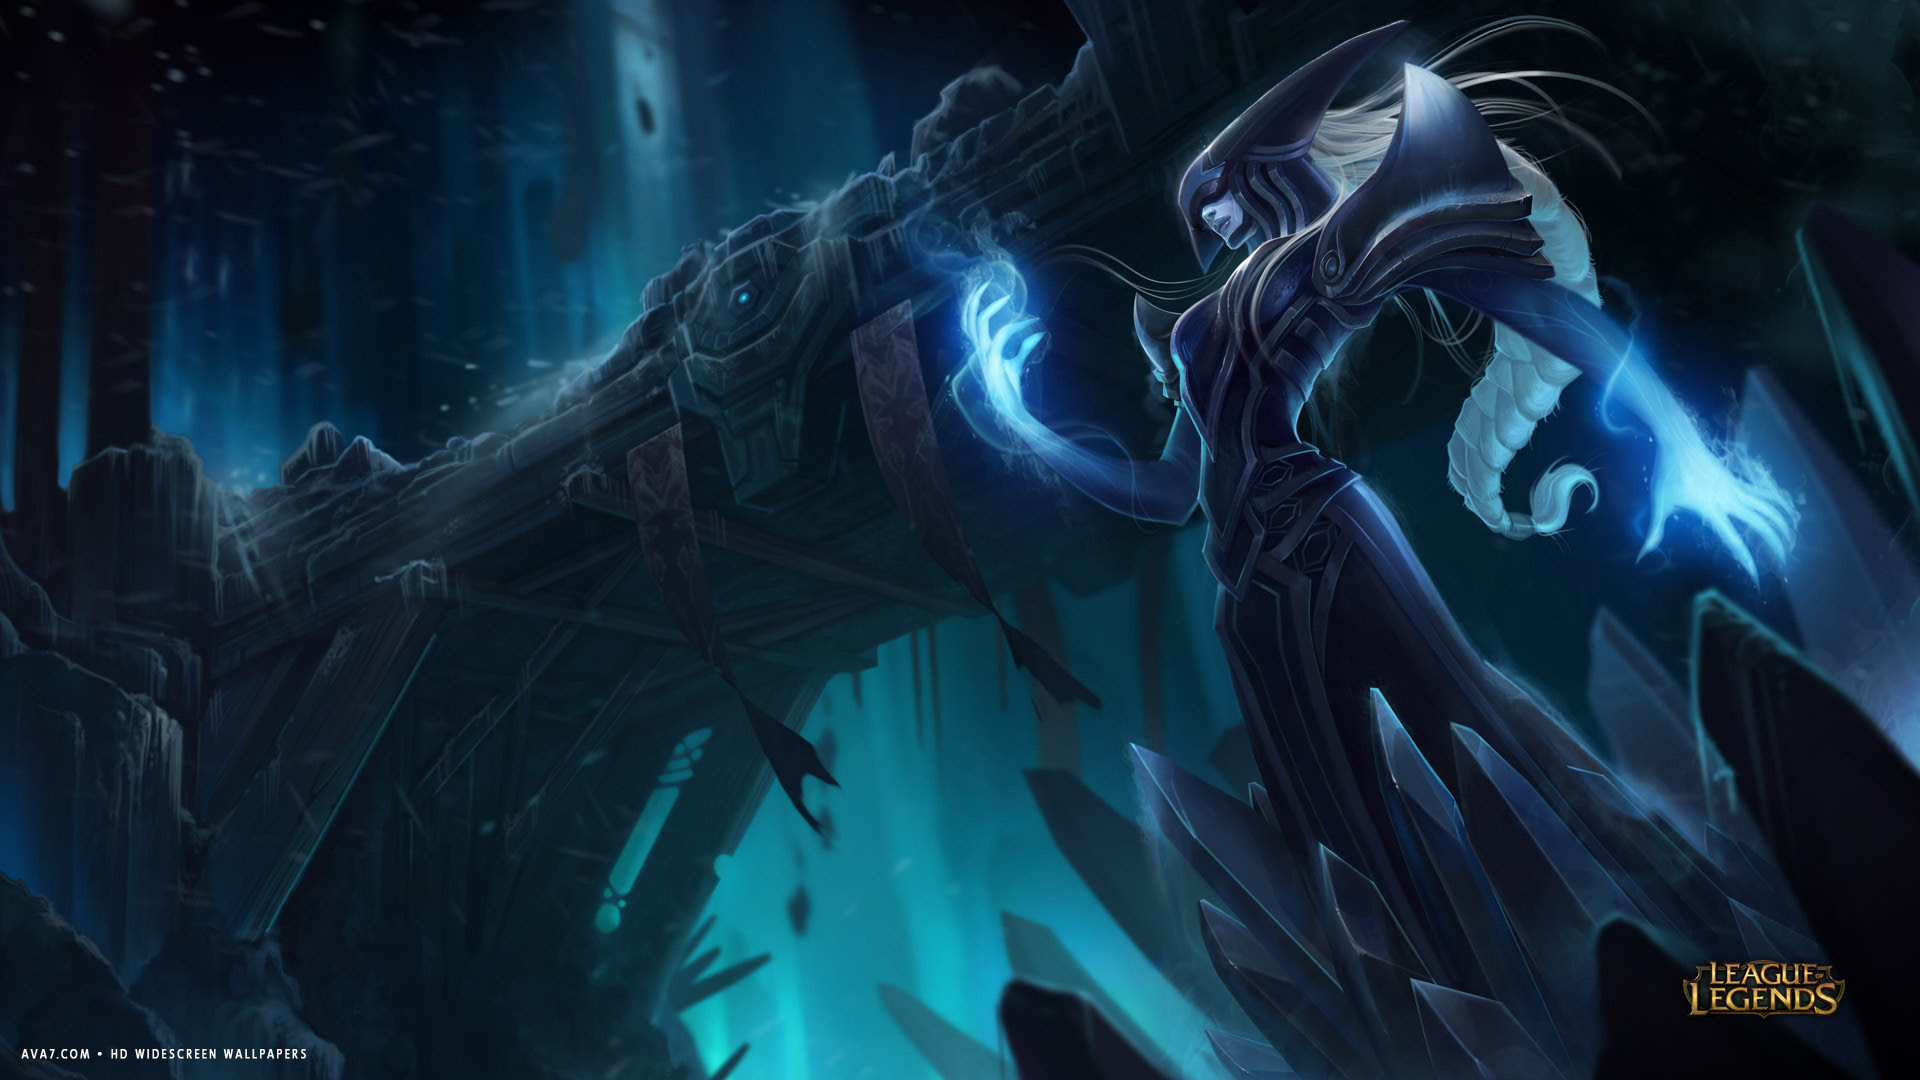 Download League Of Legends Wallpapers Hd 1920x1080